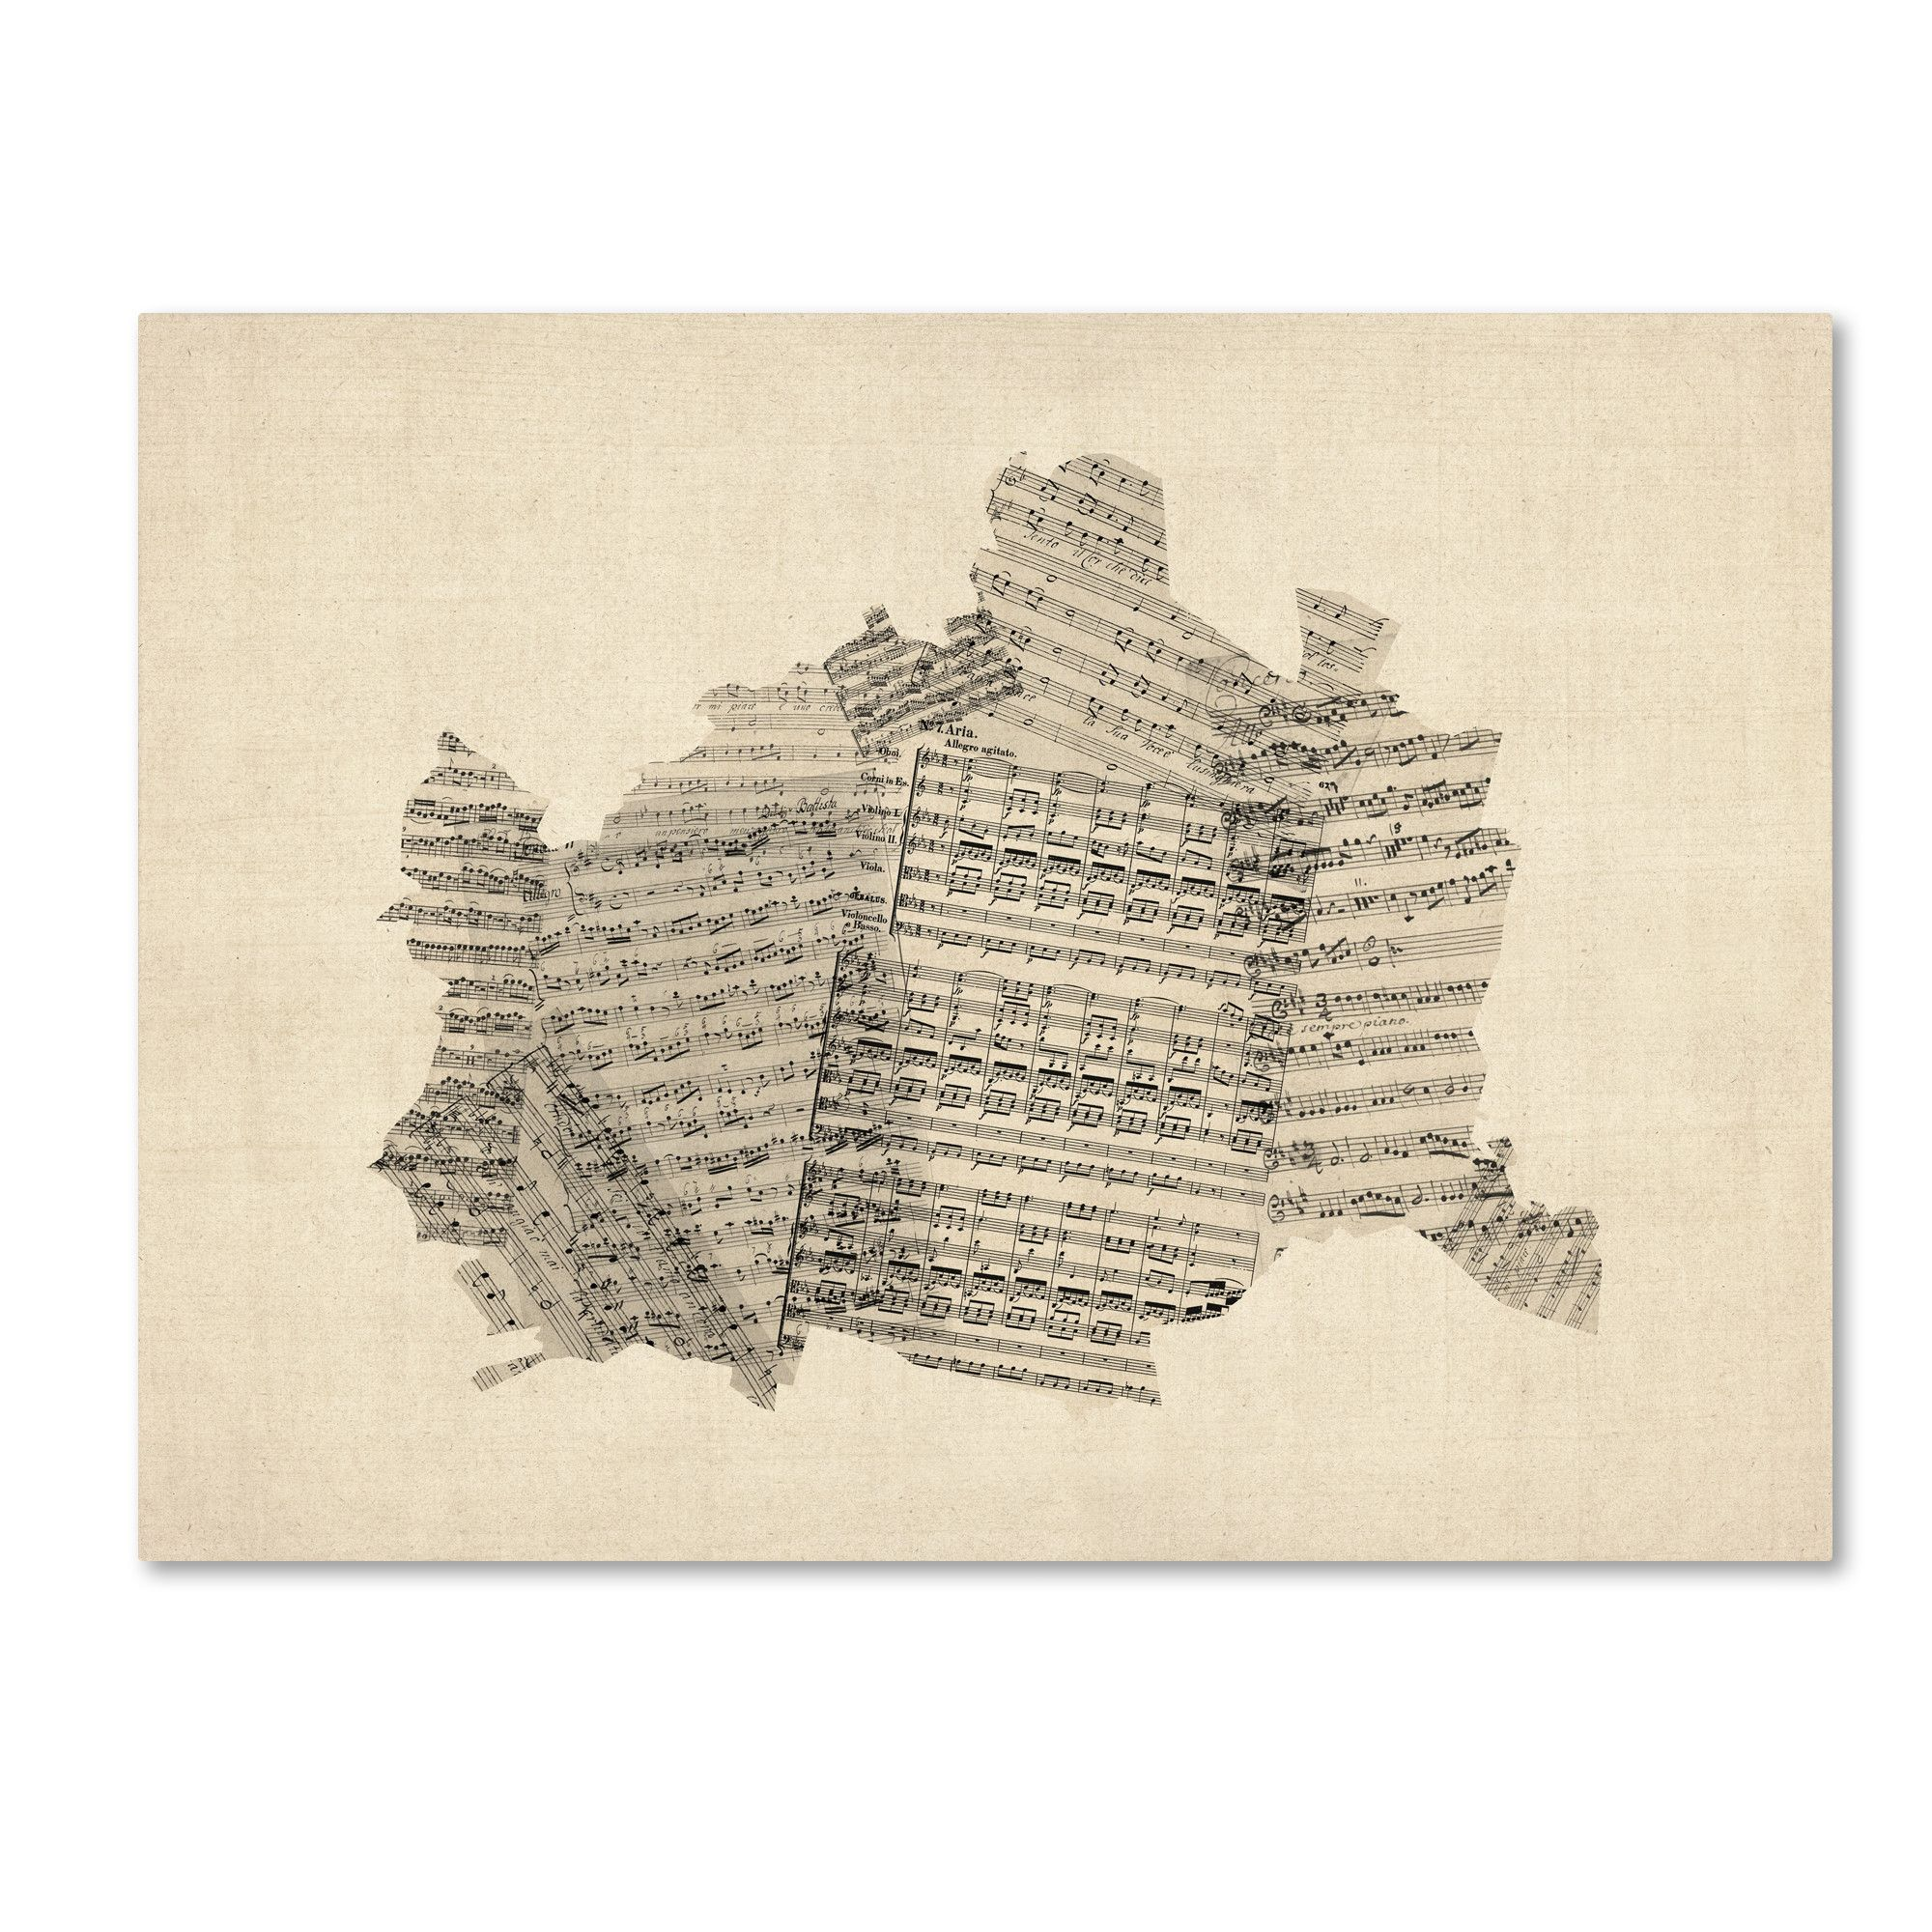 Old Sheet Music Map Of Vienna Austria Graphic Art Print On Wrapped Canvas Old Sheet Music Graphic Art Print Austria Map